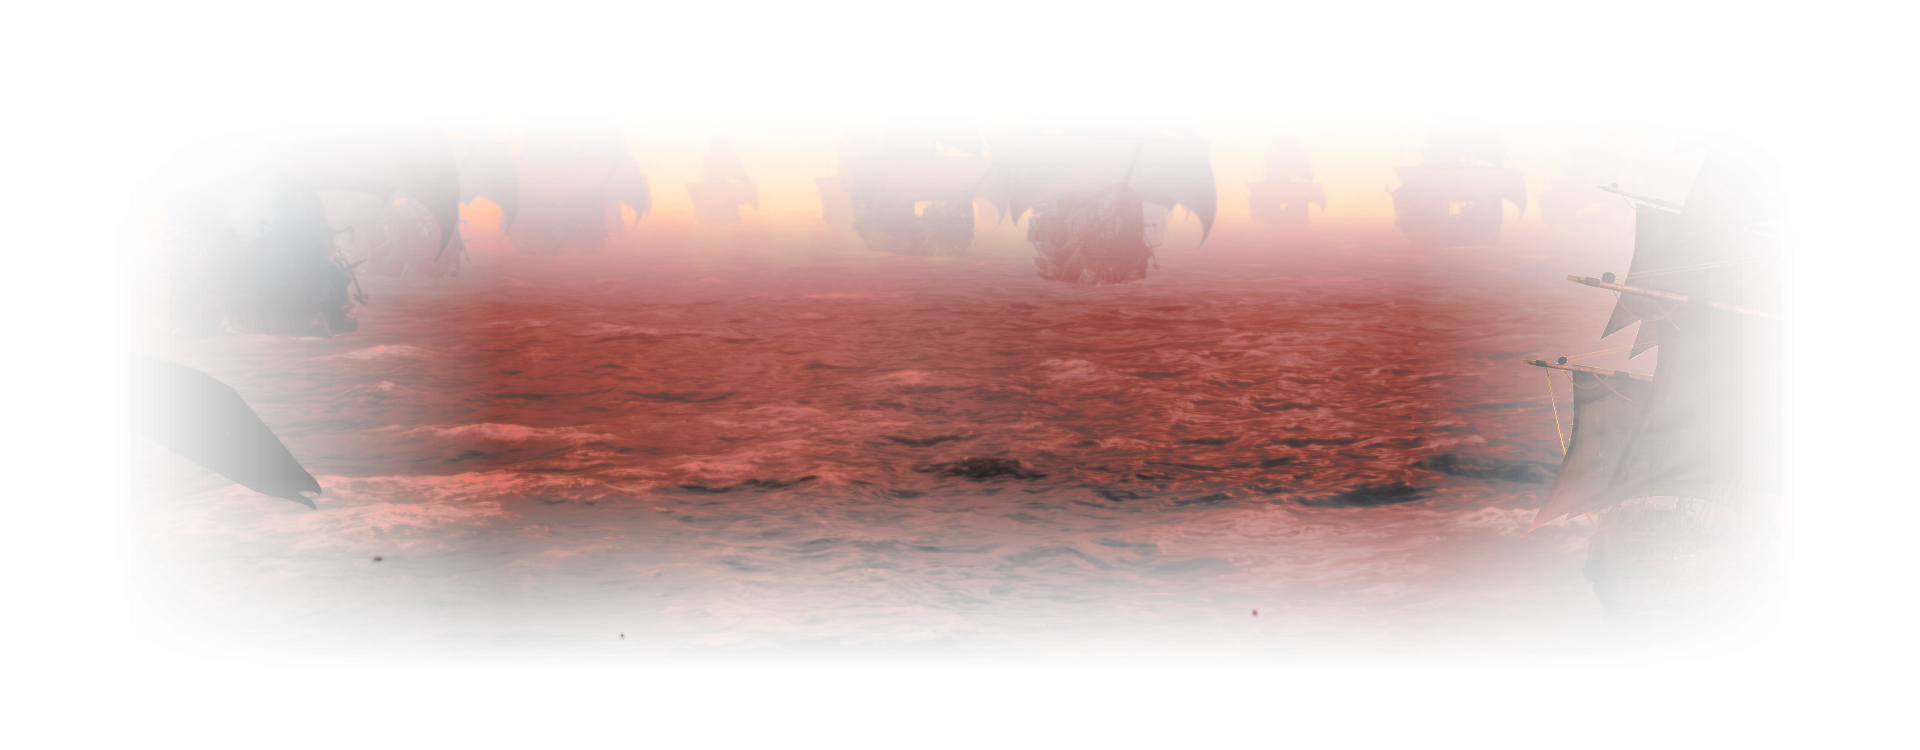 AOCG_G90_FV_FW_RR_144Hz_BACKGROUND.png